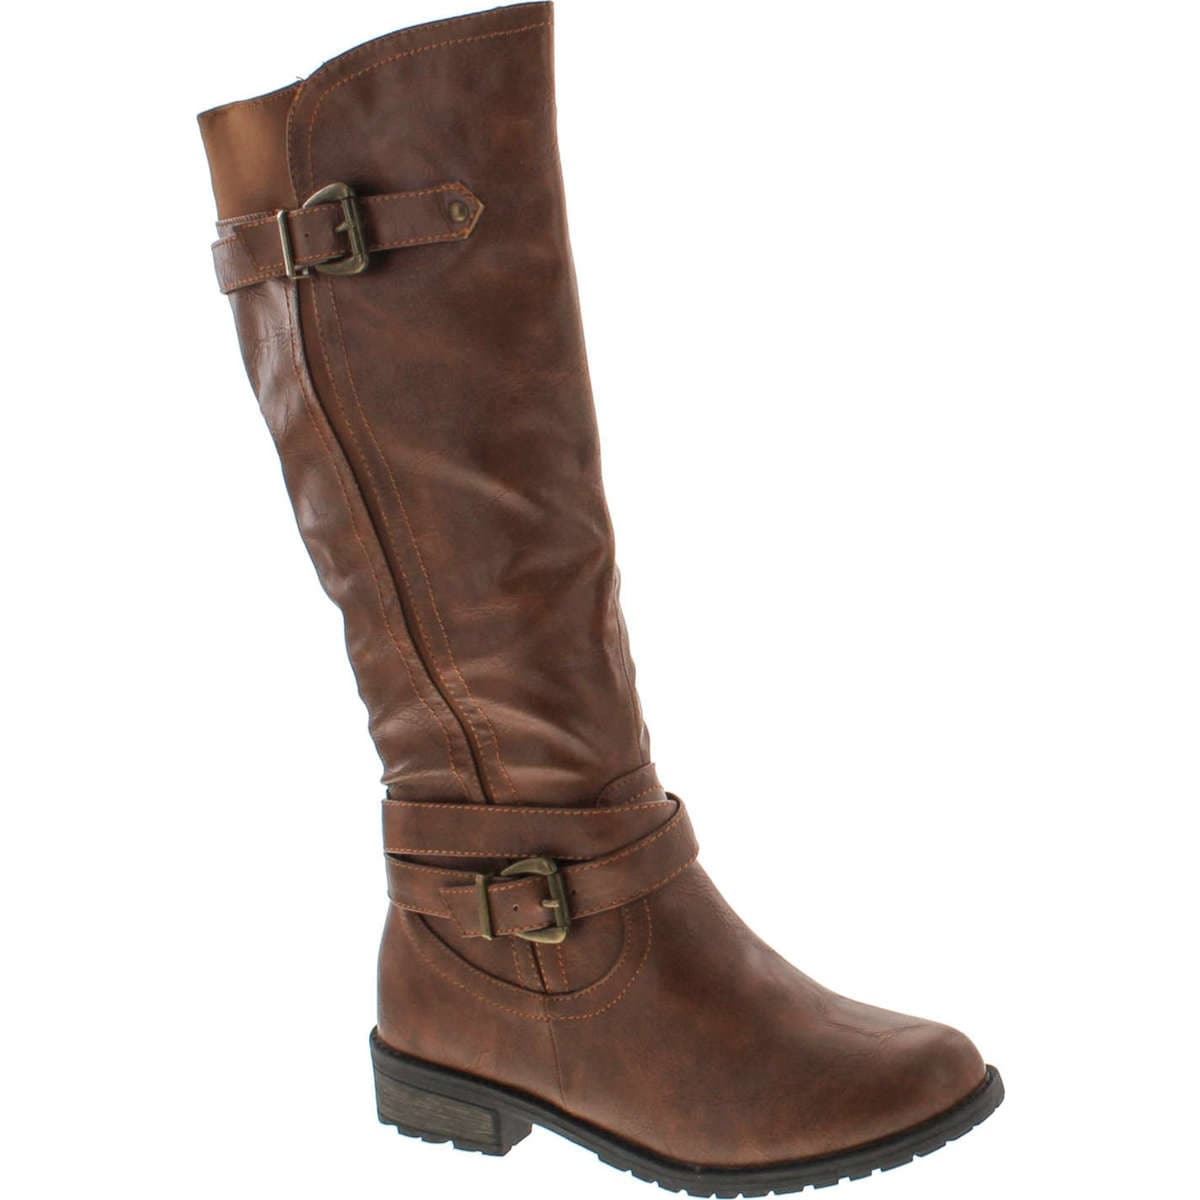 best value high quality guarantee price remains stable Forever Mango-24 Women's Shaft Side Zipper Knee High Flat Riding Boots